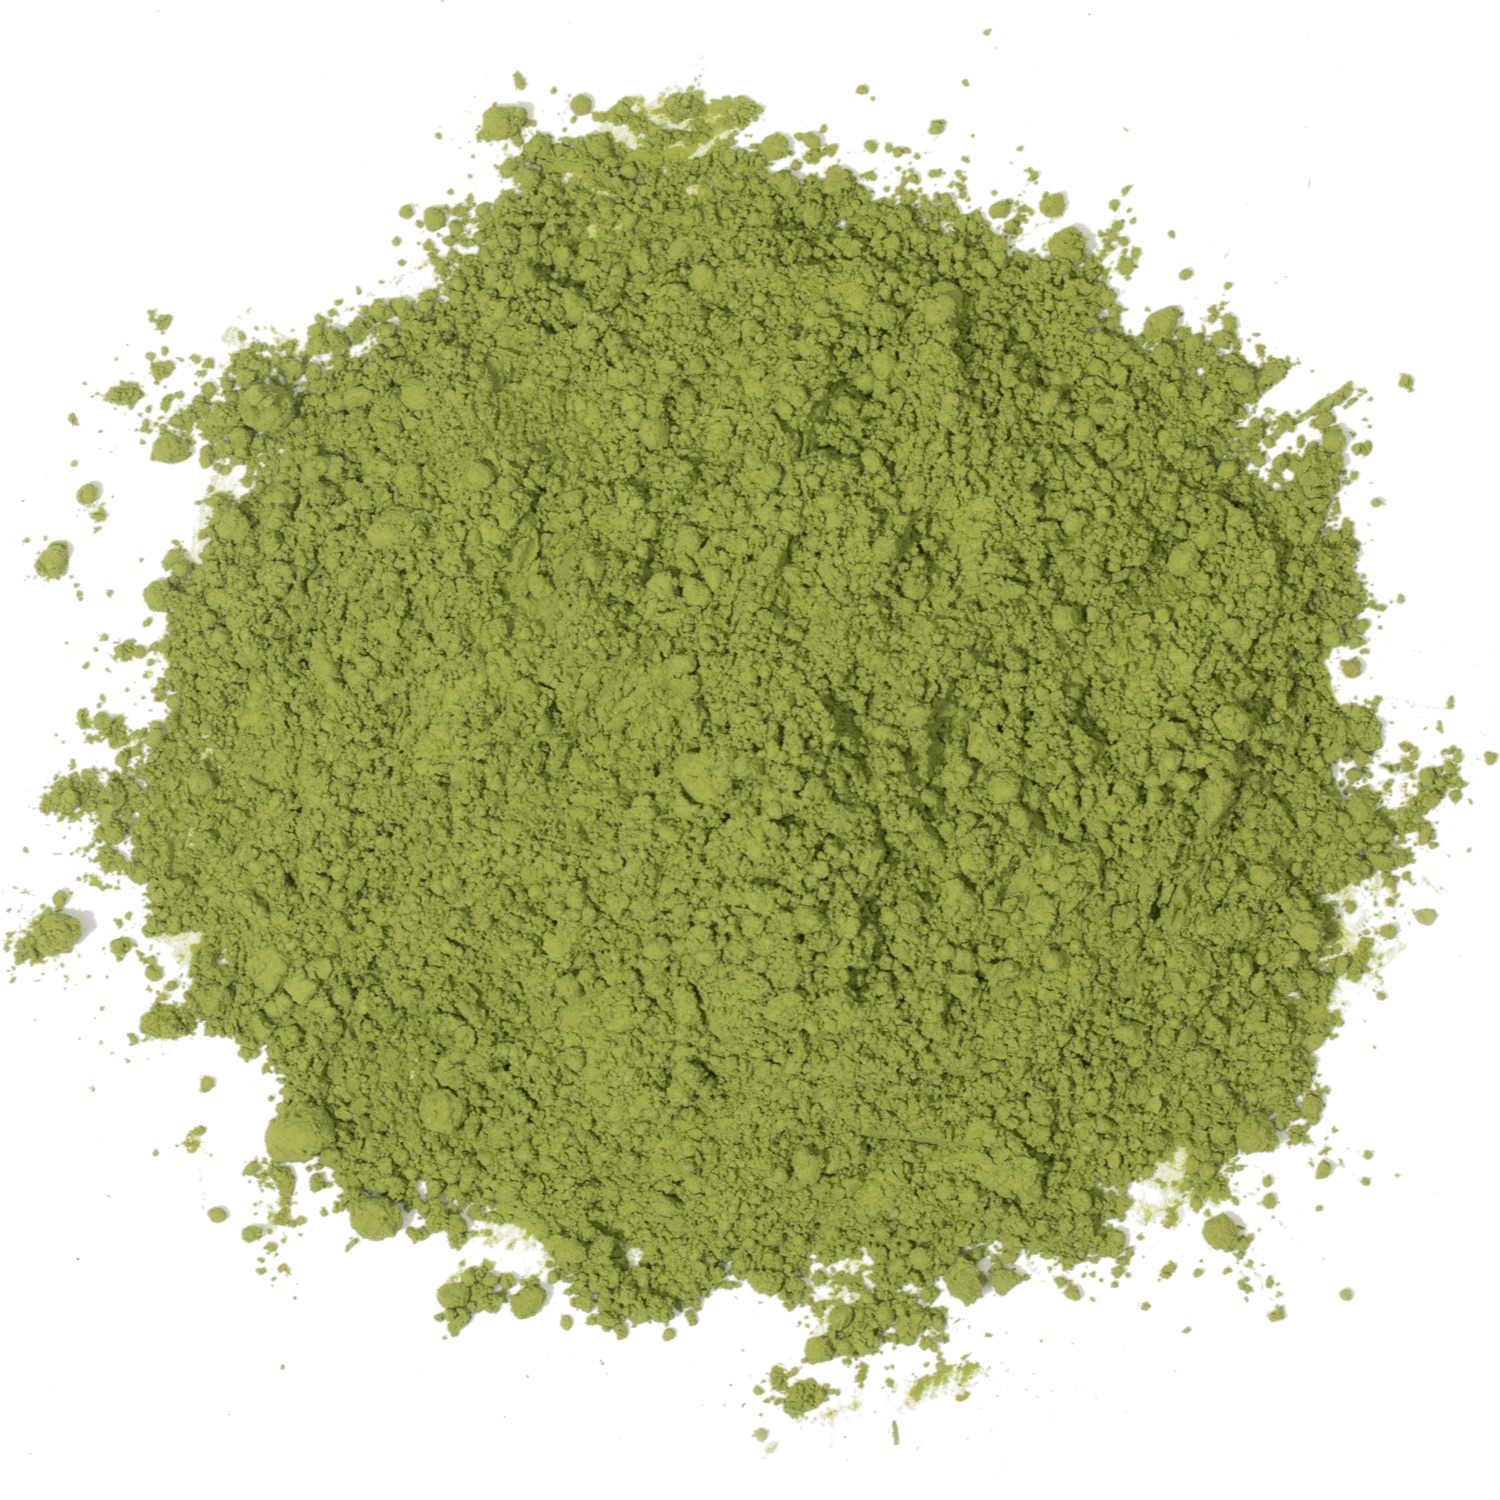 Splash of loose leaf matcha.